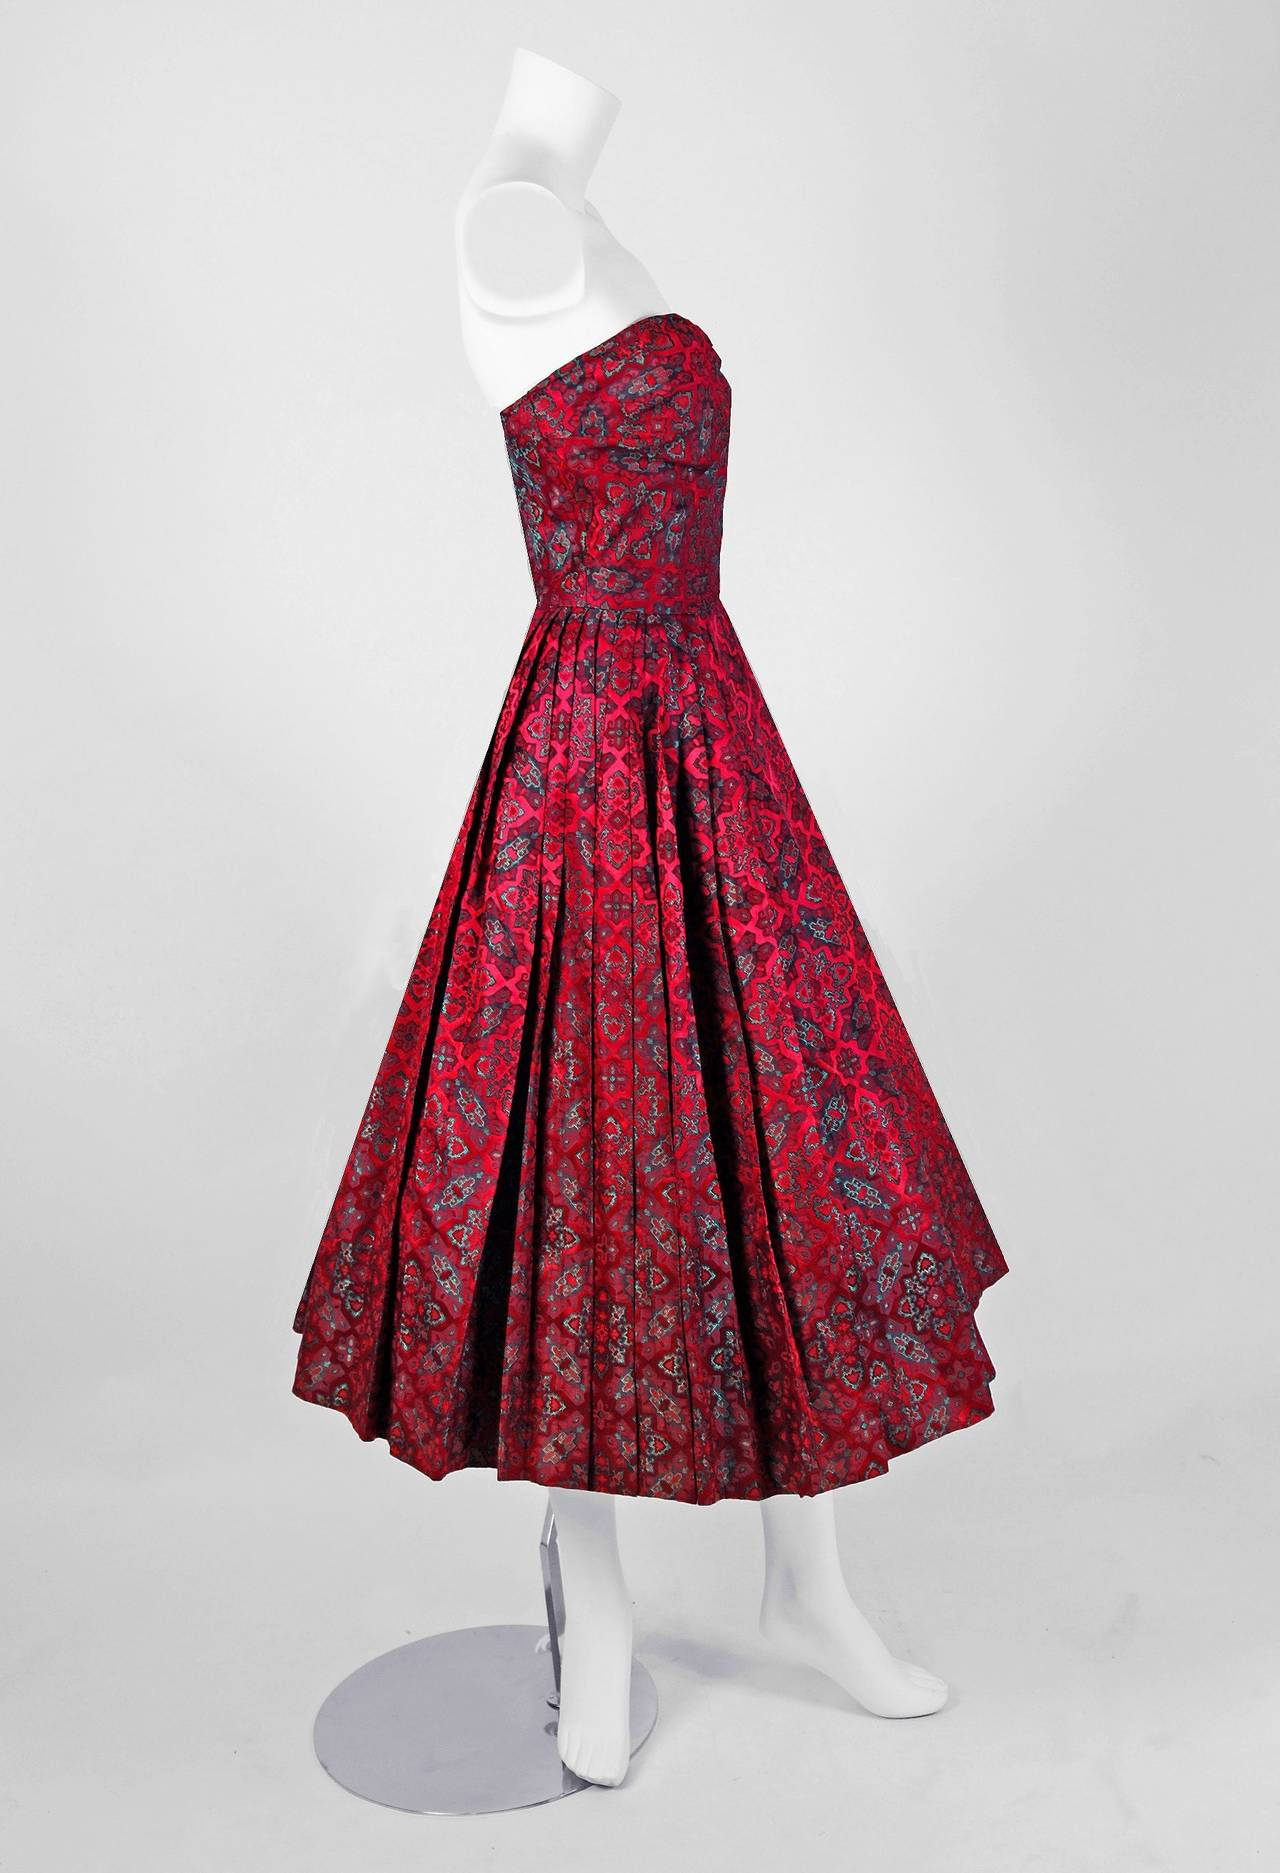 An incredibly grand and timeless cocktail party dress by the Italian Couture House of Eleanora Garnett. The House of Garnett had elegant boutiques in both Rome and New York during the 1950's. Her ready to wear pieces are hard to find, but her